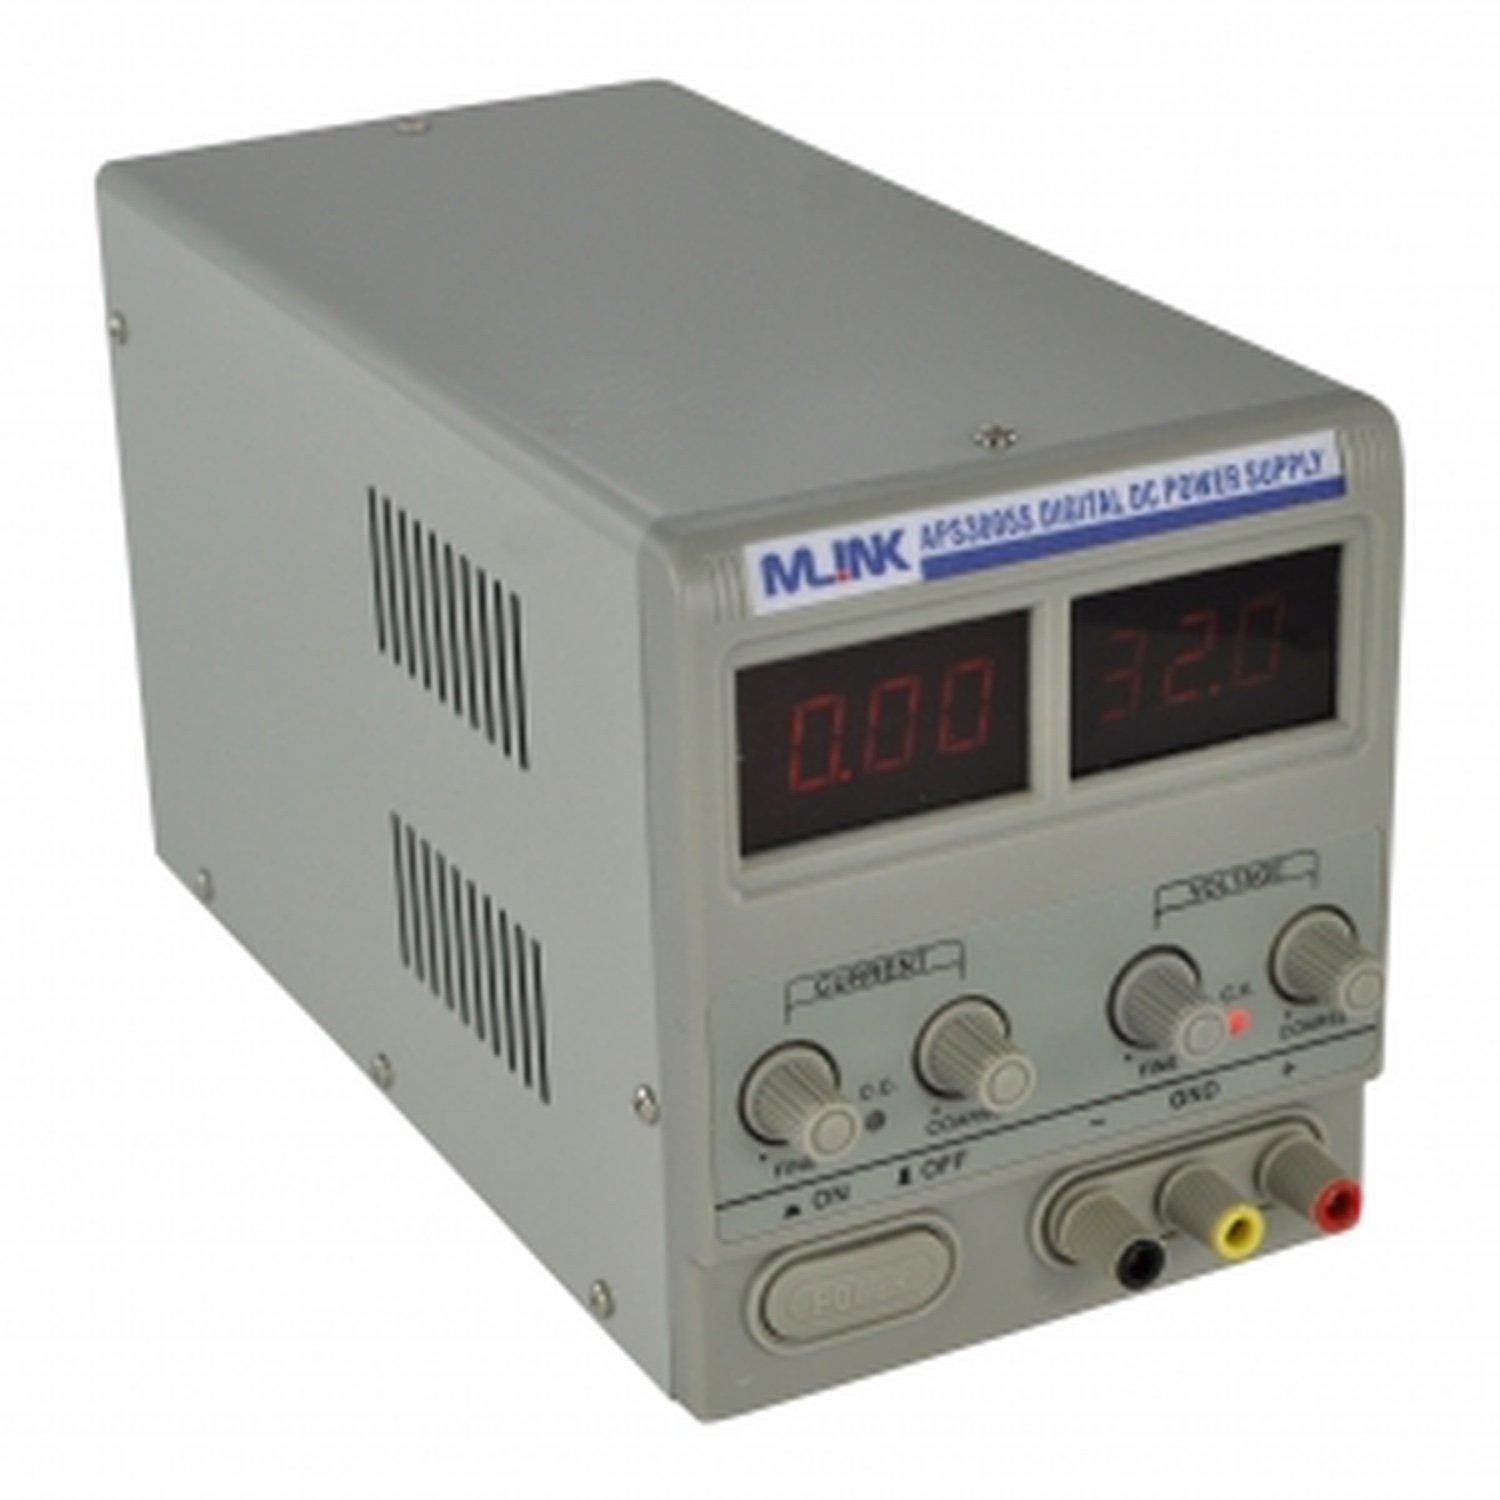 MLINK APS3005S 30 V, 5A Digital Maintenance Power Supply